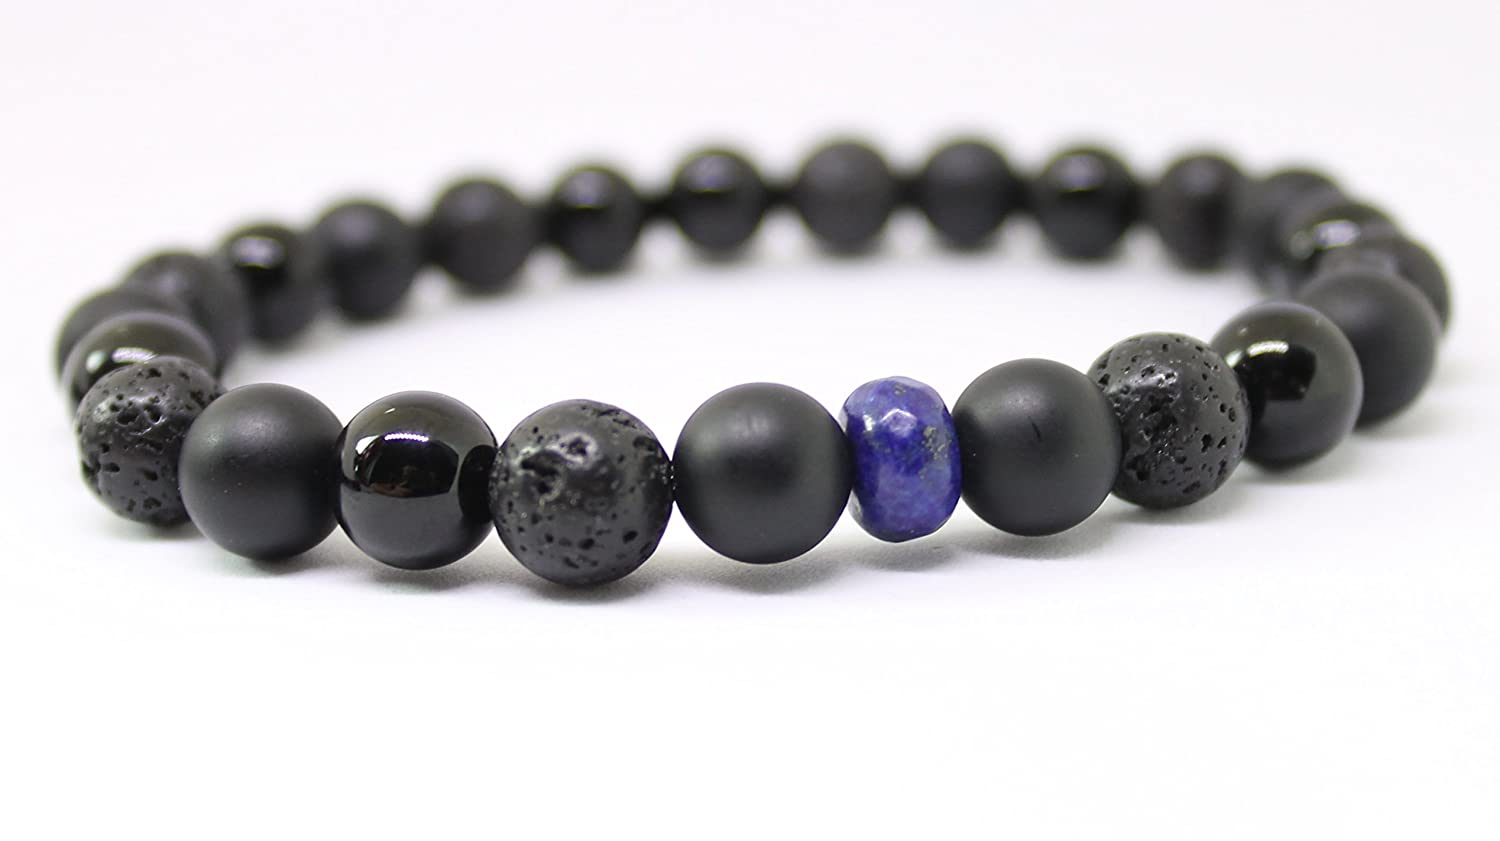 LEO Lava Oil Diffuser bracelet, Thin Blue Line, Unisex Black Onyx and Lapis Gemstone Beaded Wellness Bracelet, Police Officer, Protective Energy, Unisex beaded bracelets